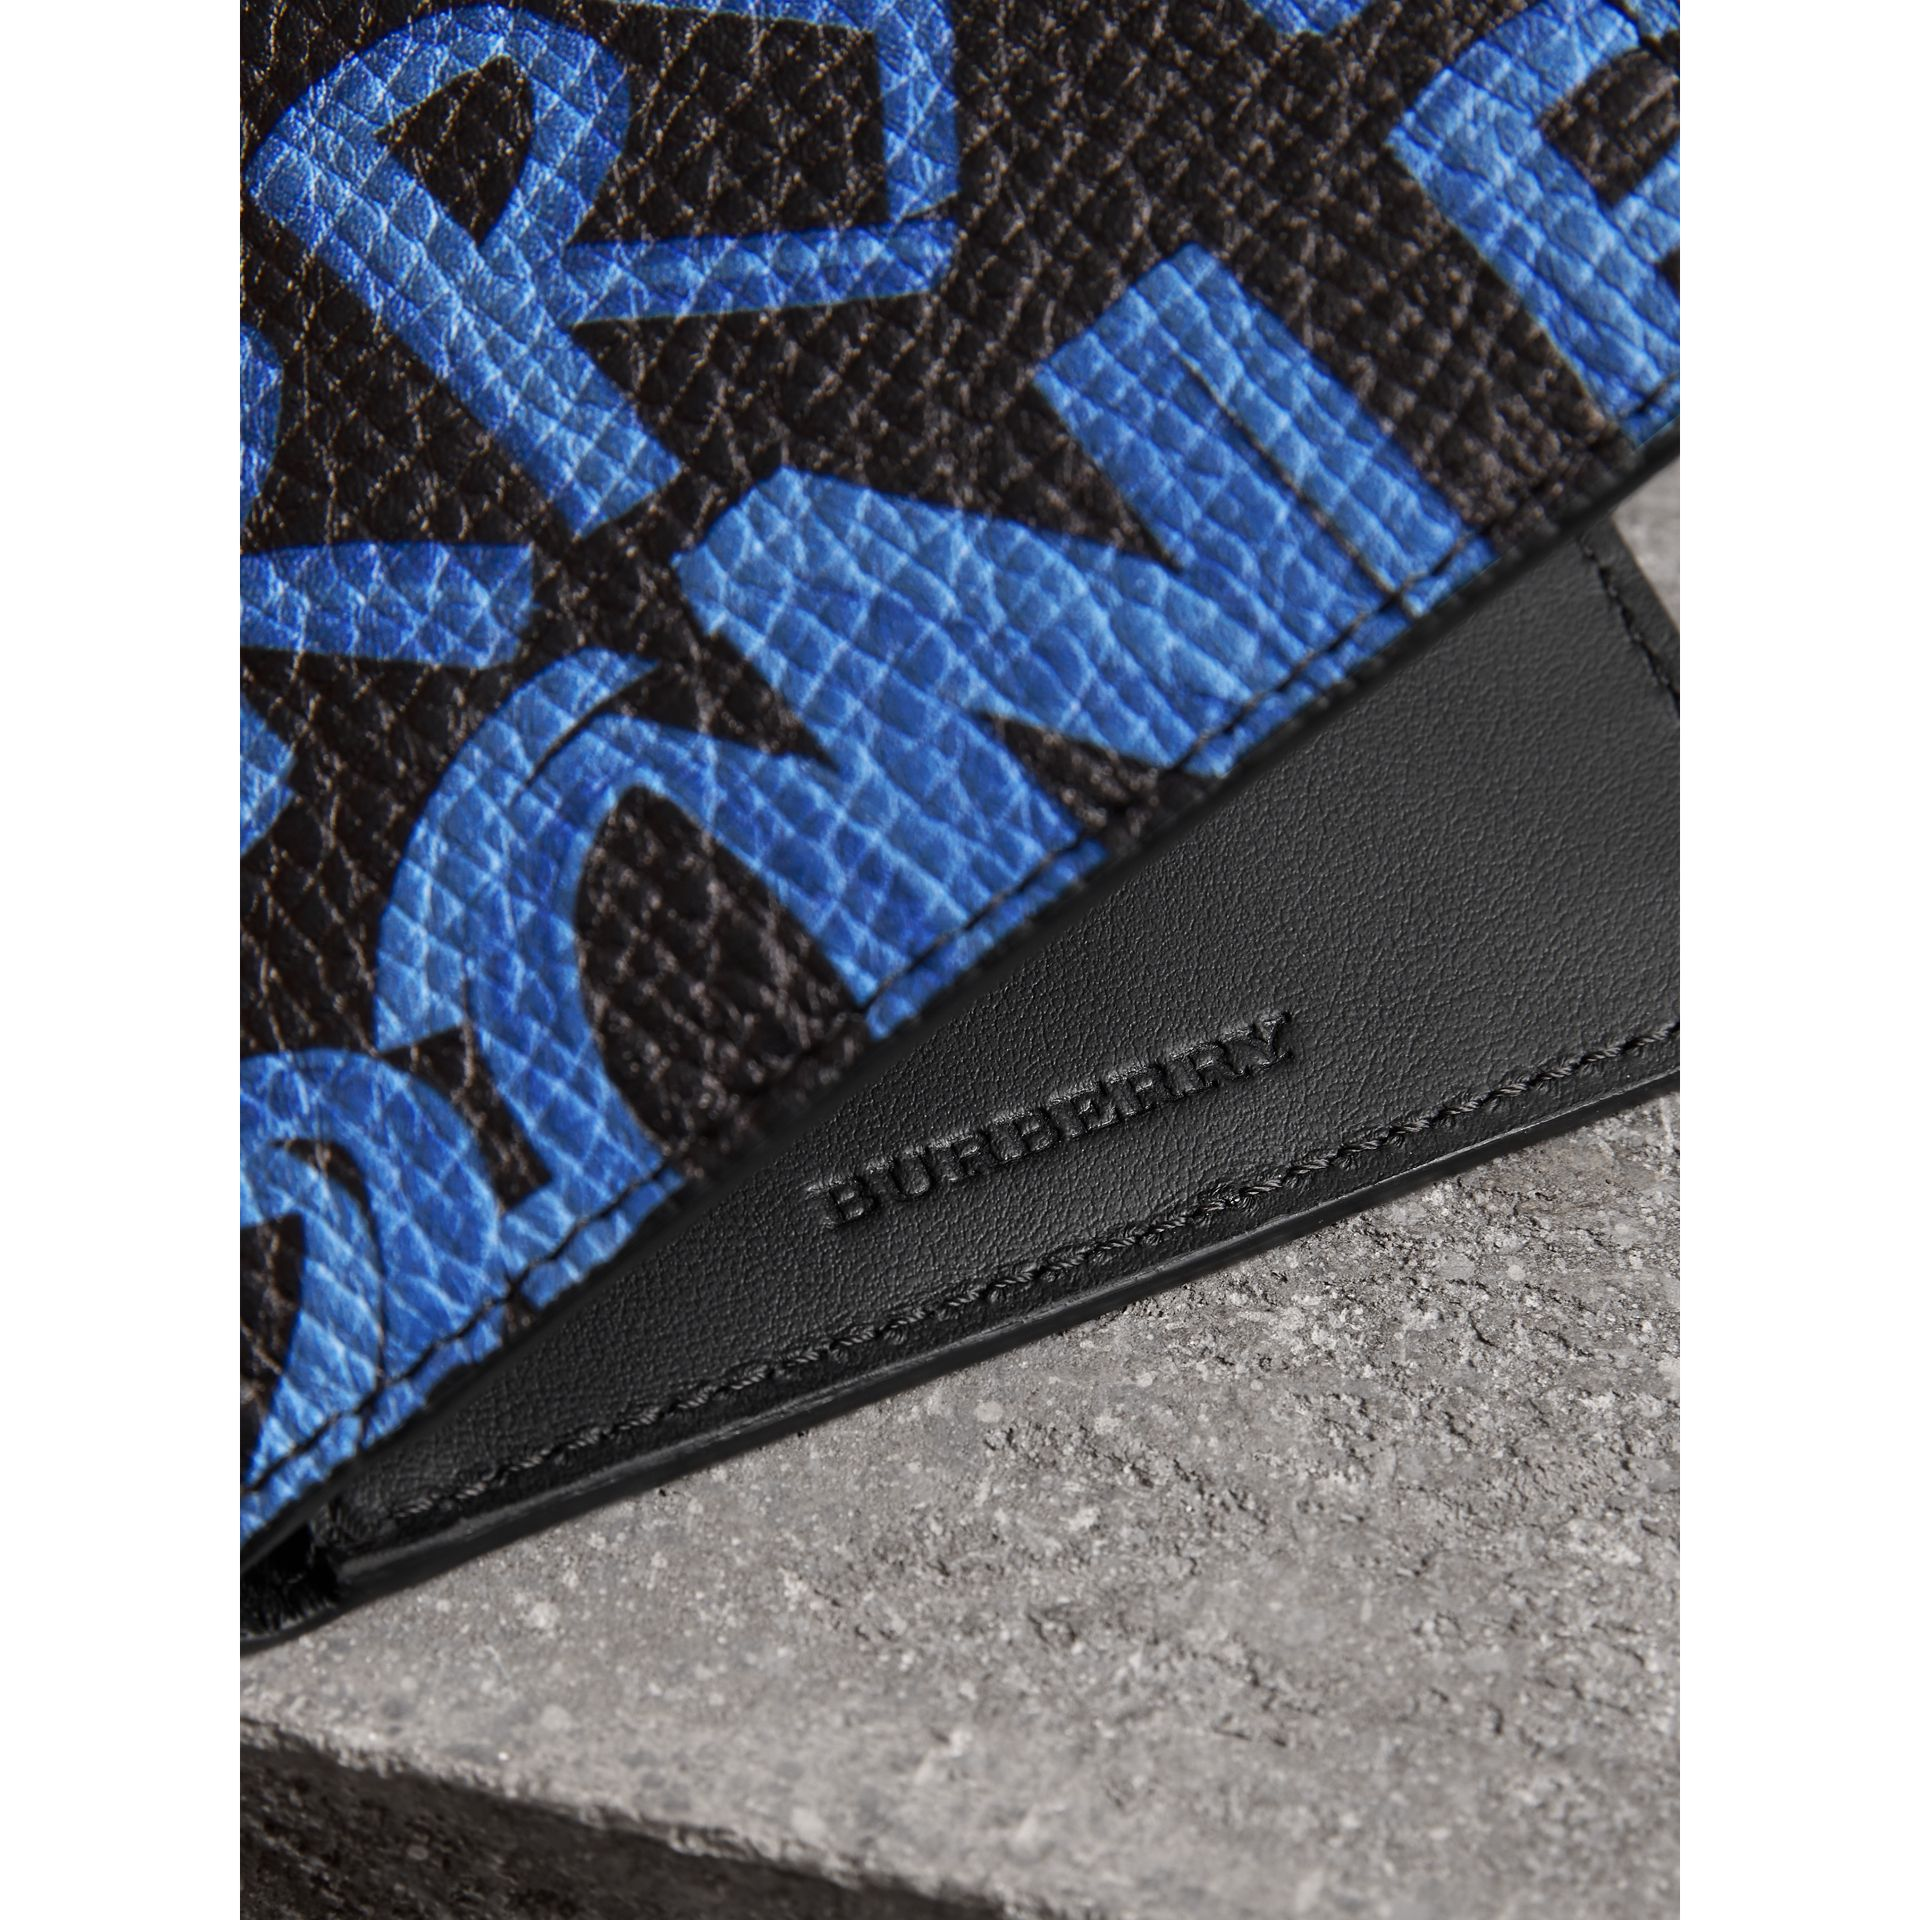 Graffiti Print Leather International Bifold Wallet in Blue/black - Men | Burberry - gallery image 1